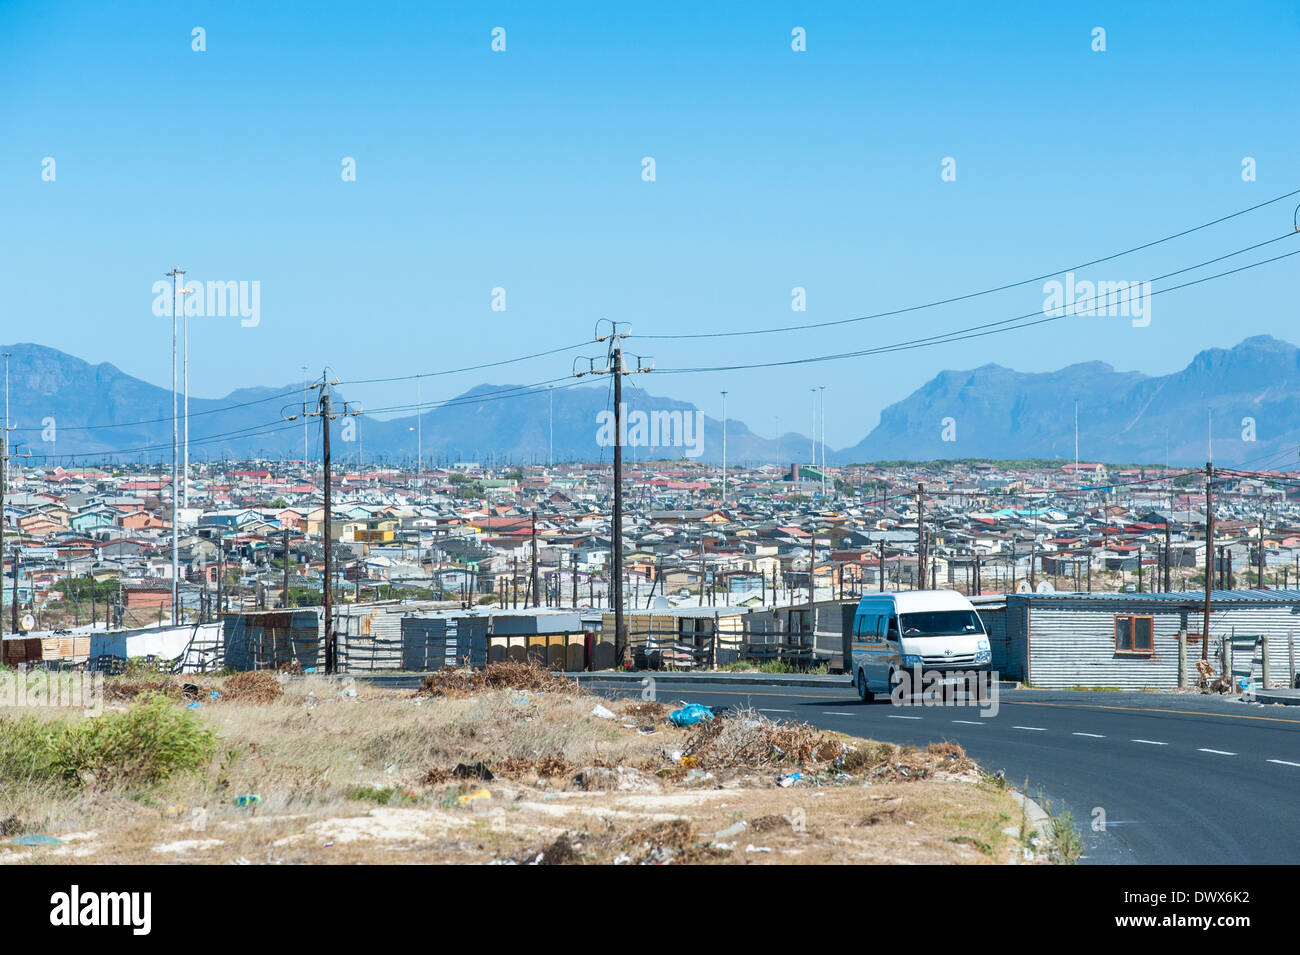 Road with minibus taxi in Khayelitsha, Cape Town, Western Cape, South Africa - Stock Image